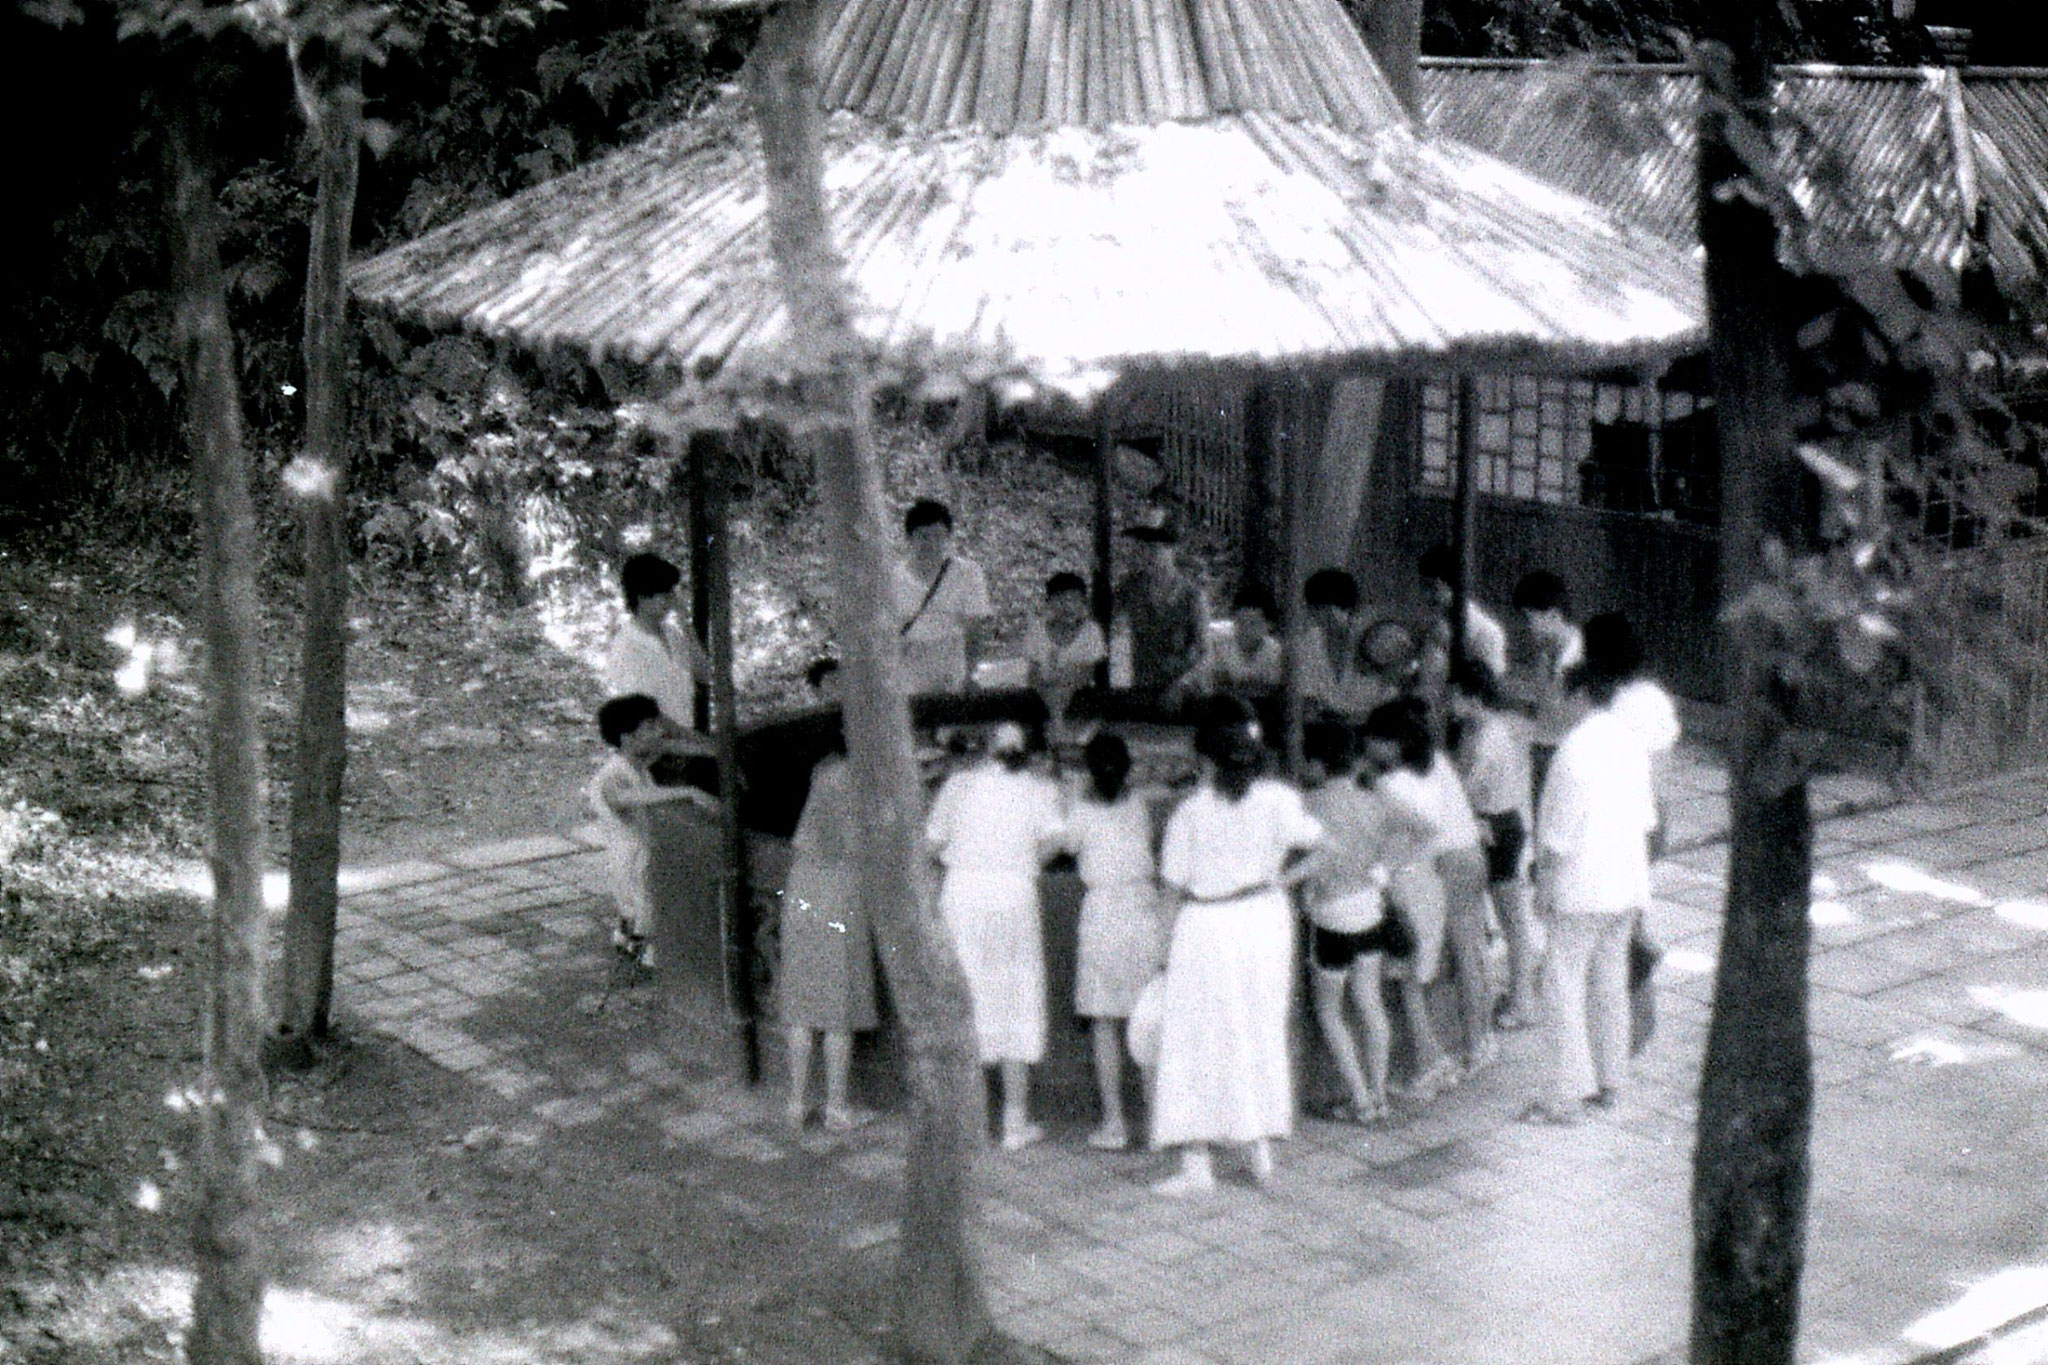 15/7/1989: 4: Yellow Dragon Spring Cave, children playing roulette